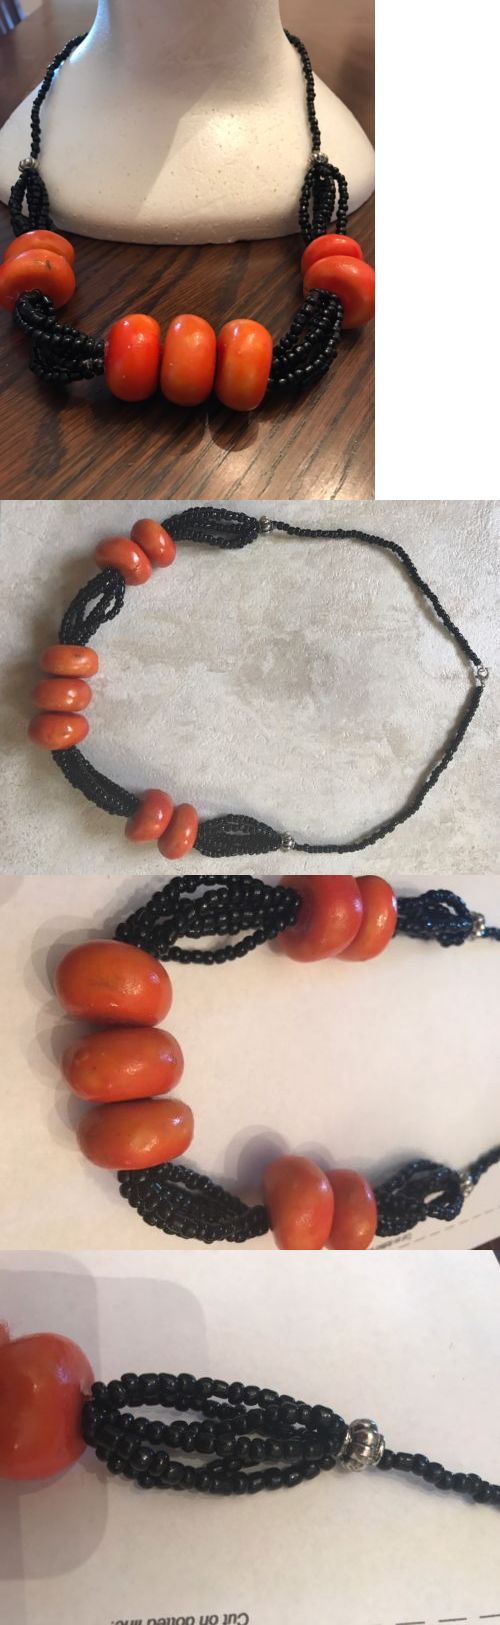 Necklaces and Pendants 98481: Very Cute African Moroccan Berber Necklace With Amber Resin Beads New -> BUY IT NOW ONLY: $35.99 on eBay!